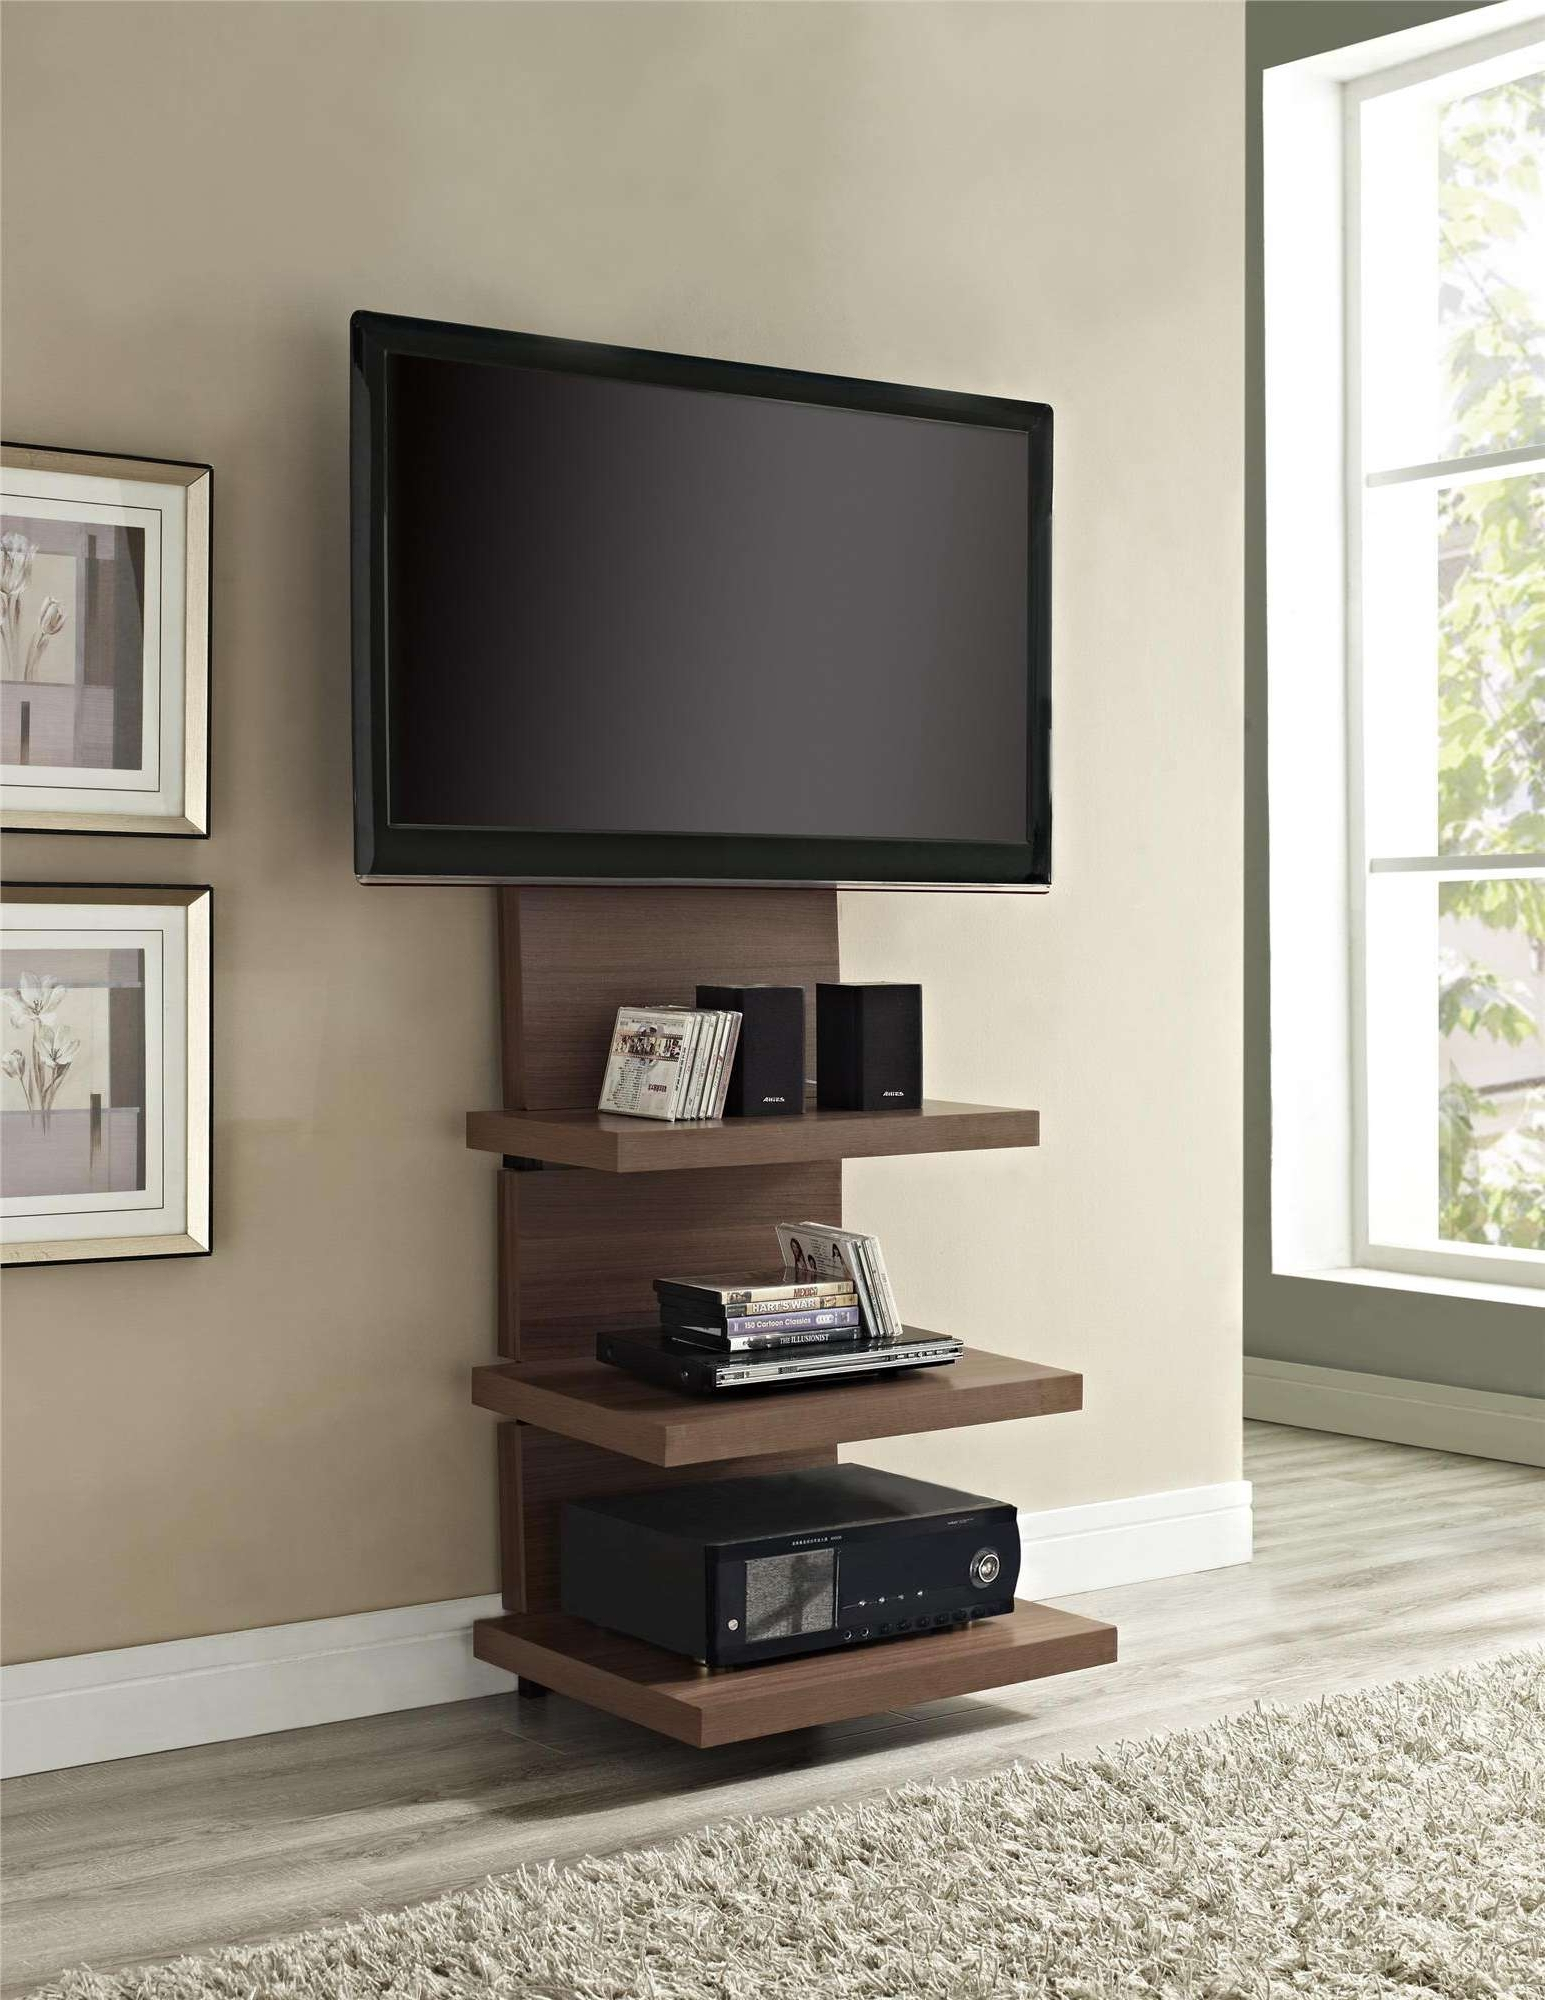 Tall Skinny Tv Stands Throughout Most Up To Date Tall Tv Stand Stands For Flat Screens Ikea Shallow Console Narrow (View 6 of 20)